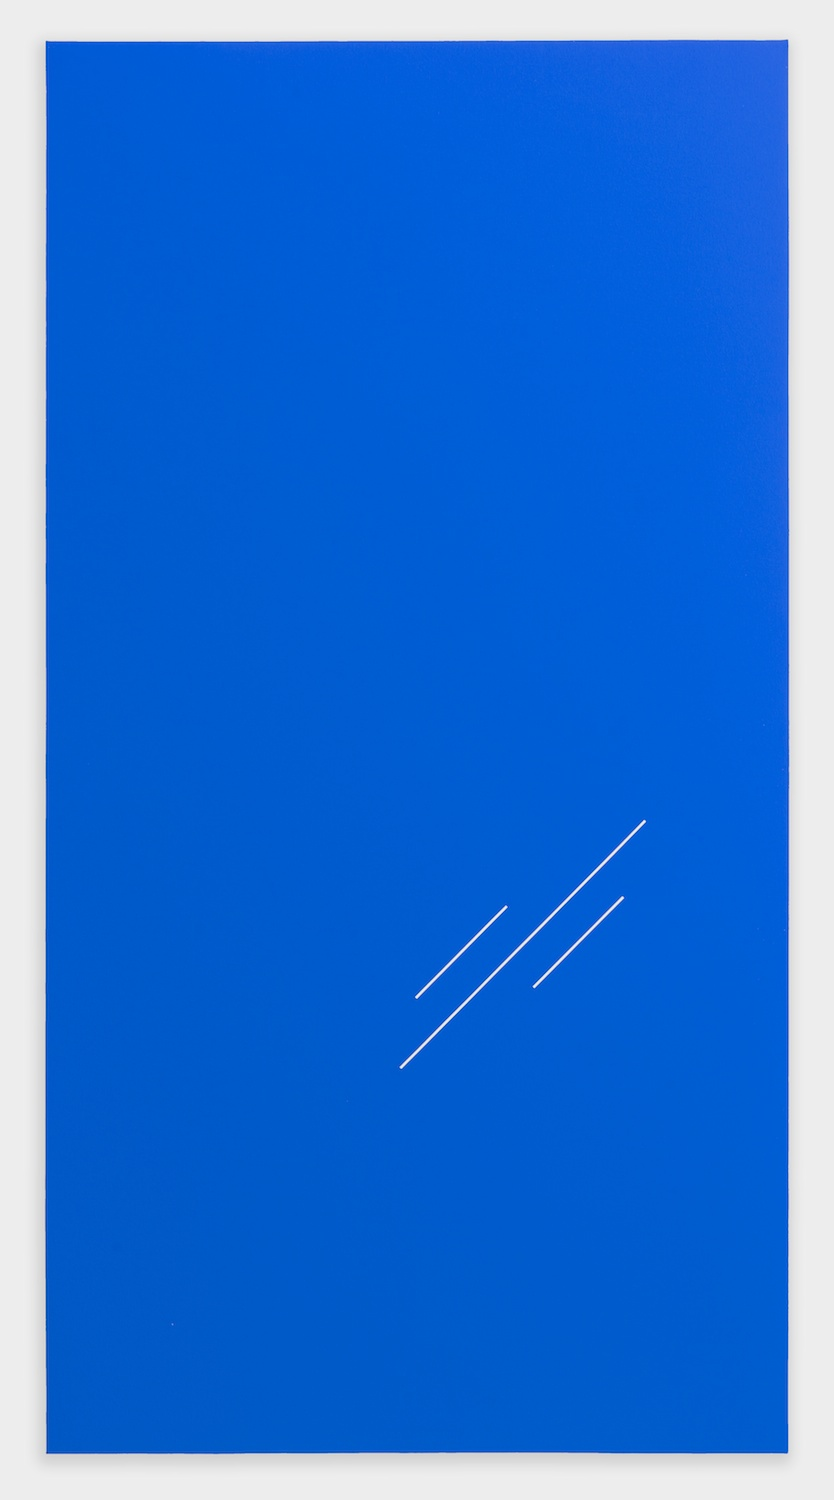 "Paul Cowan BCEAUSE THE SKY IS BULE 2013 Chroma-key blue paint on canvas 78"" x 41"" PC079"